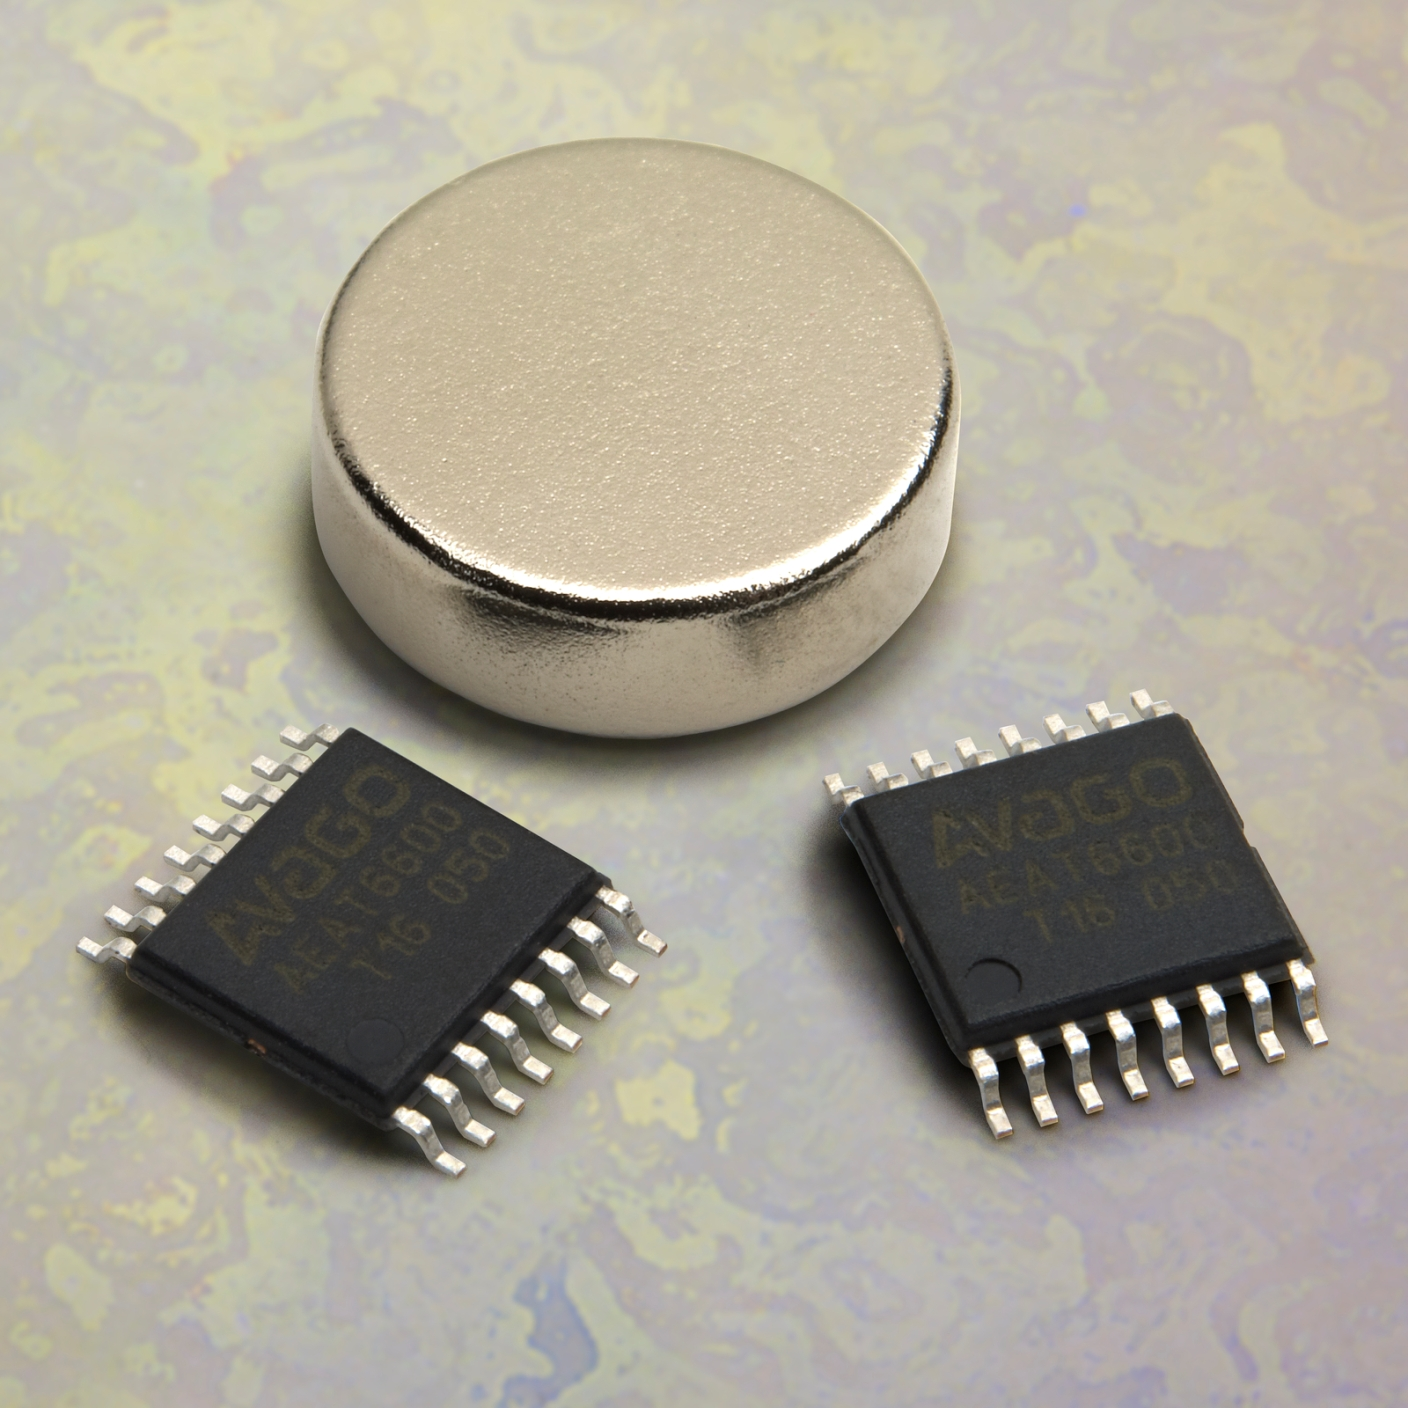 Highest Resolution Hall Effect Magnetic Encoder For Industrial Sensor Ic Sensors Current Circuit Applications Aeat 6600 T16